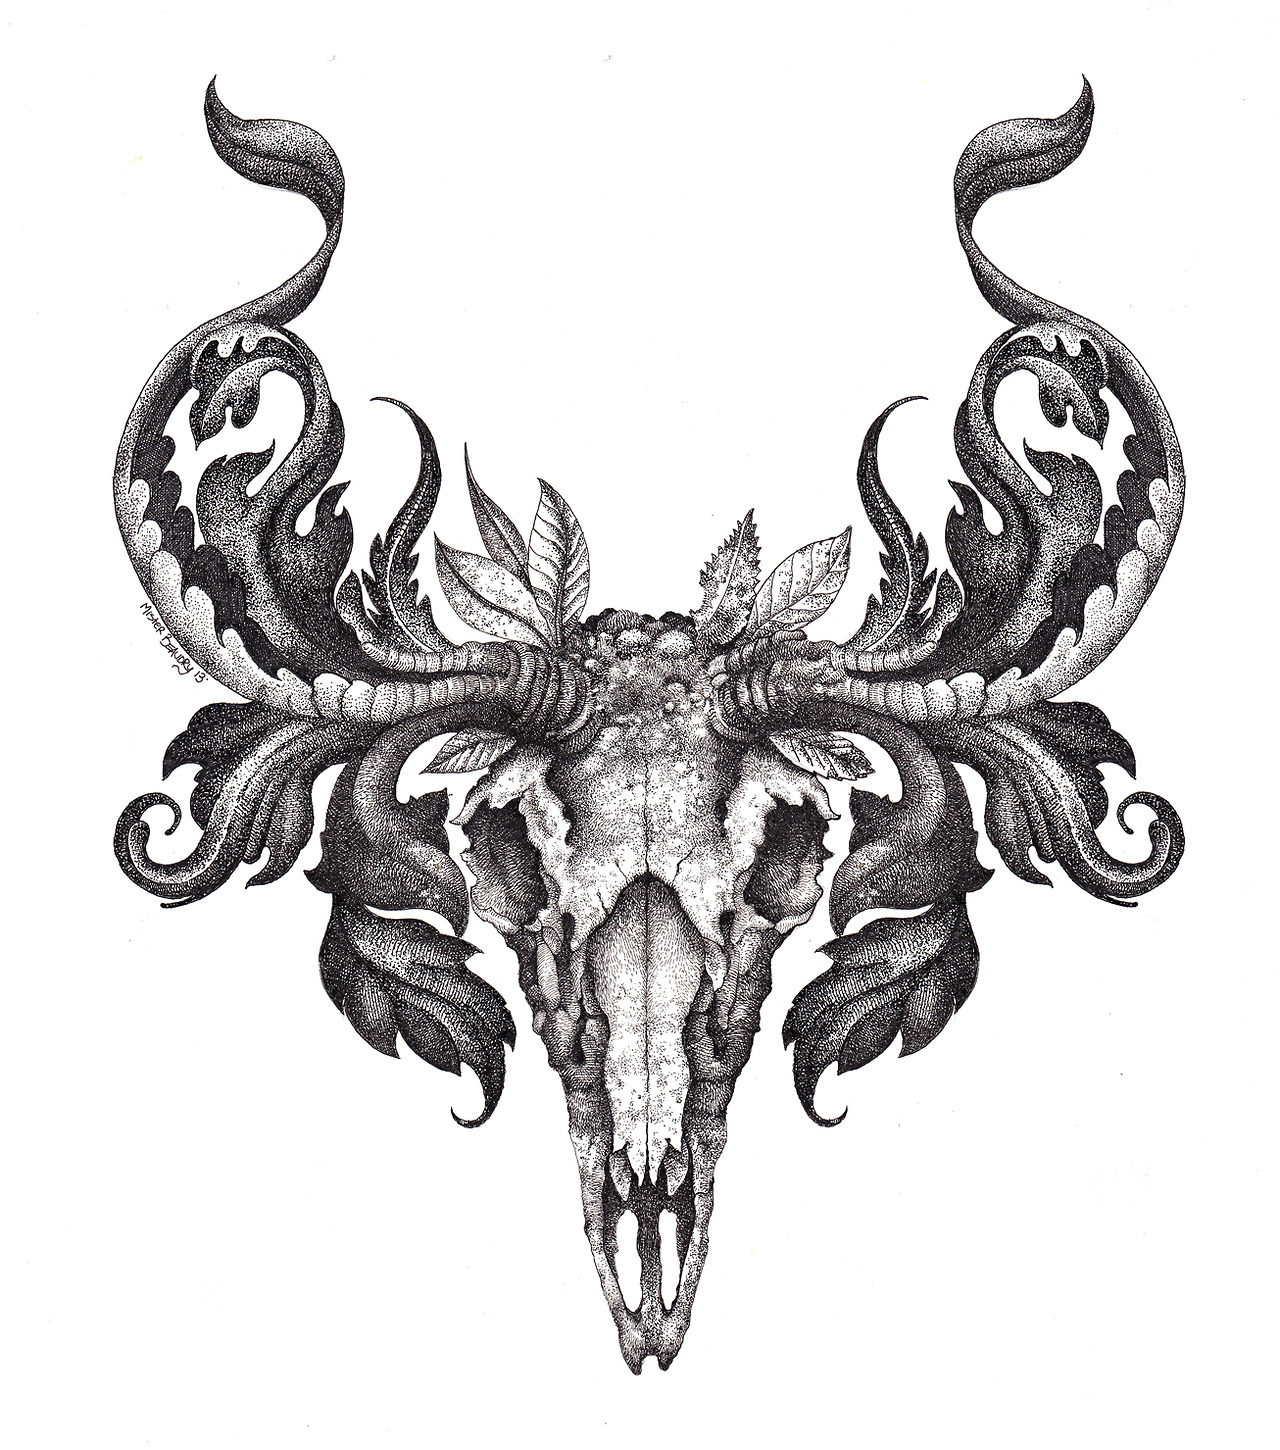 Elk skull drawing - photo#25